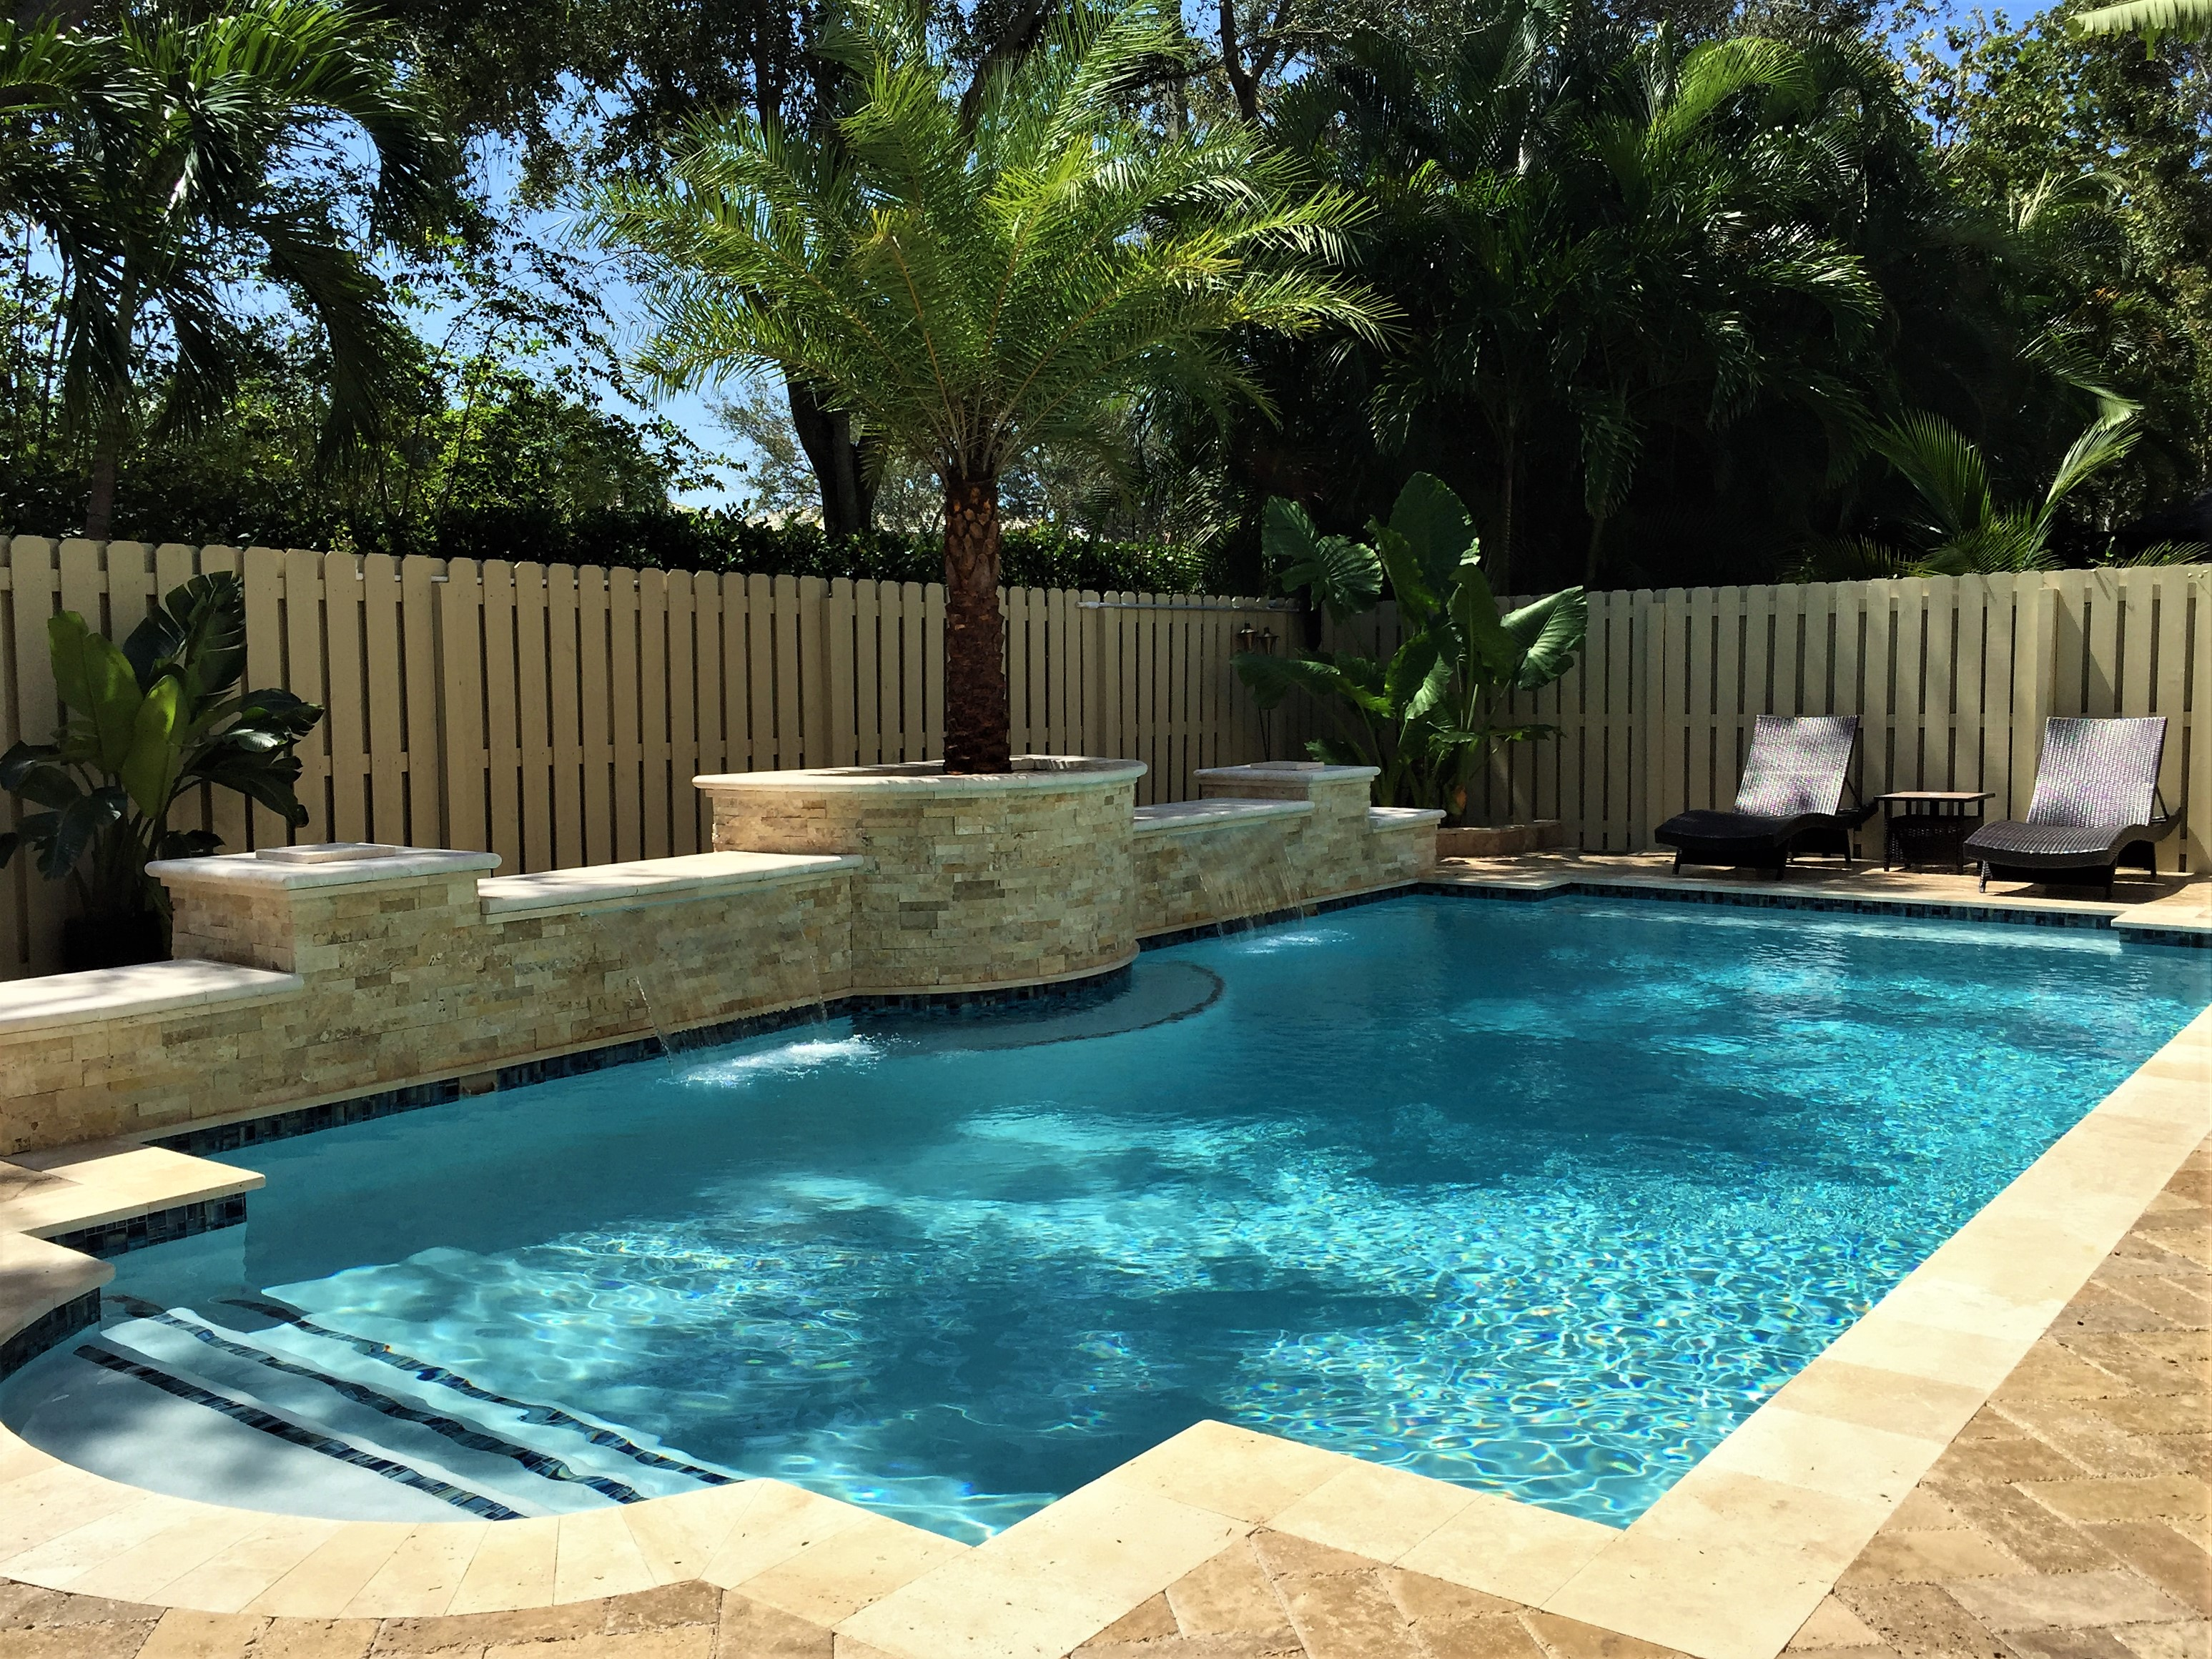 Pool Features - Seacrest Pools